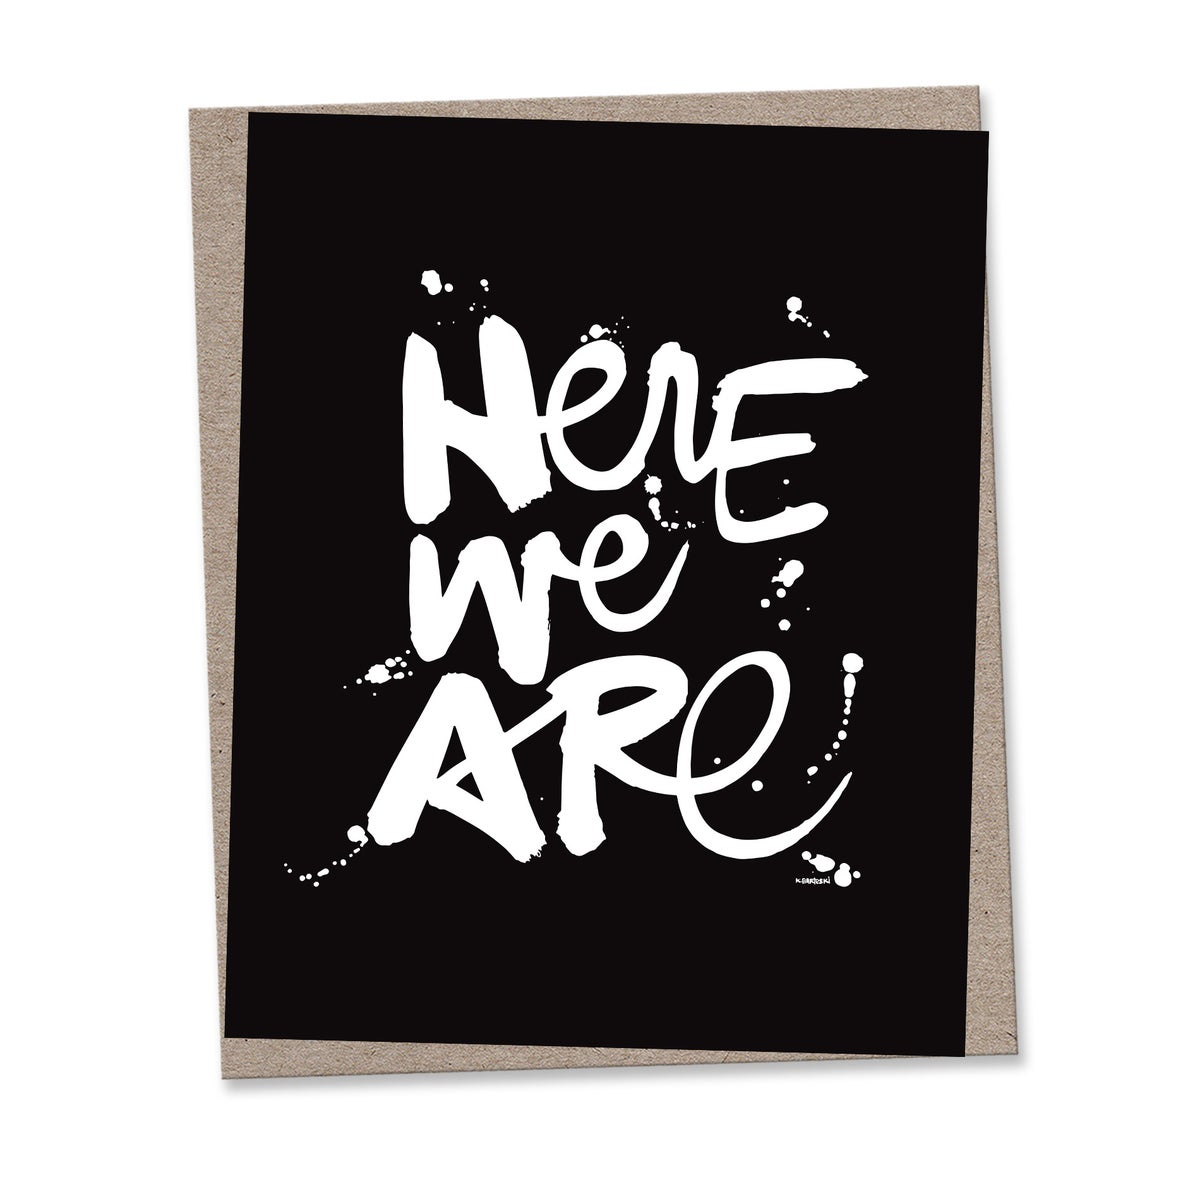 Image of HERE WE ARE #kbscript print